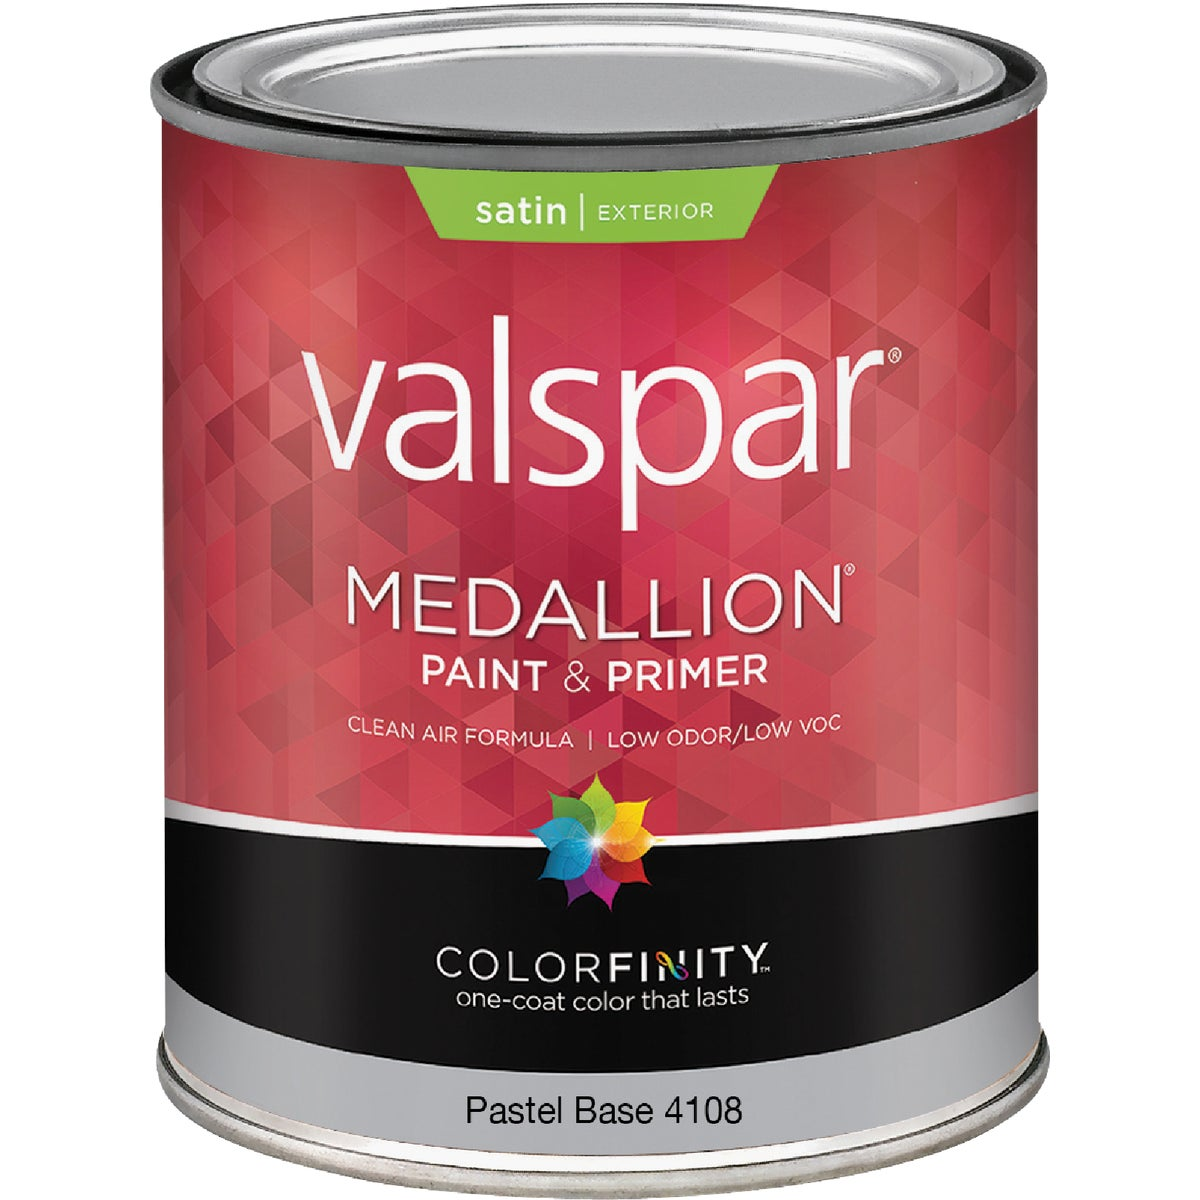 EXT SAT PASTEL BS PAINT - 027.0004108.005 by Valspar Corp